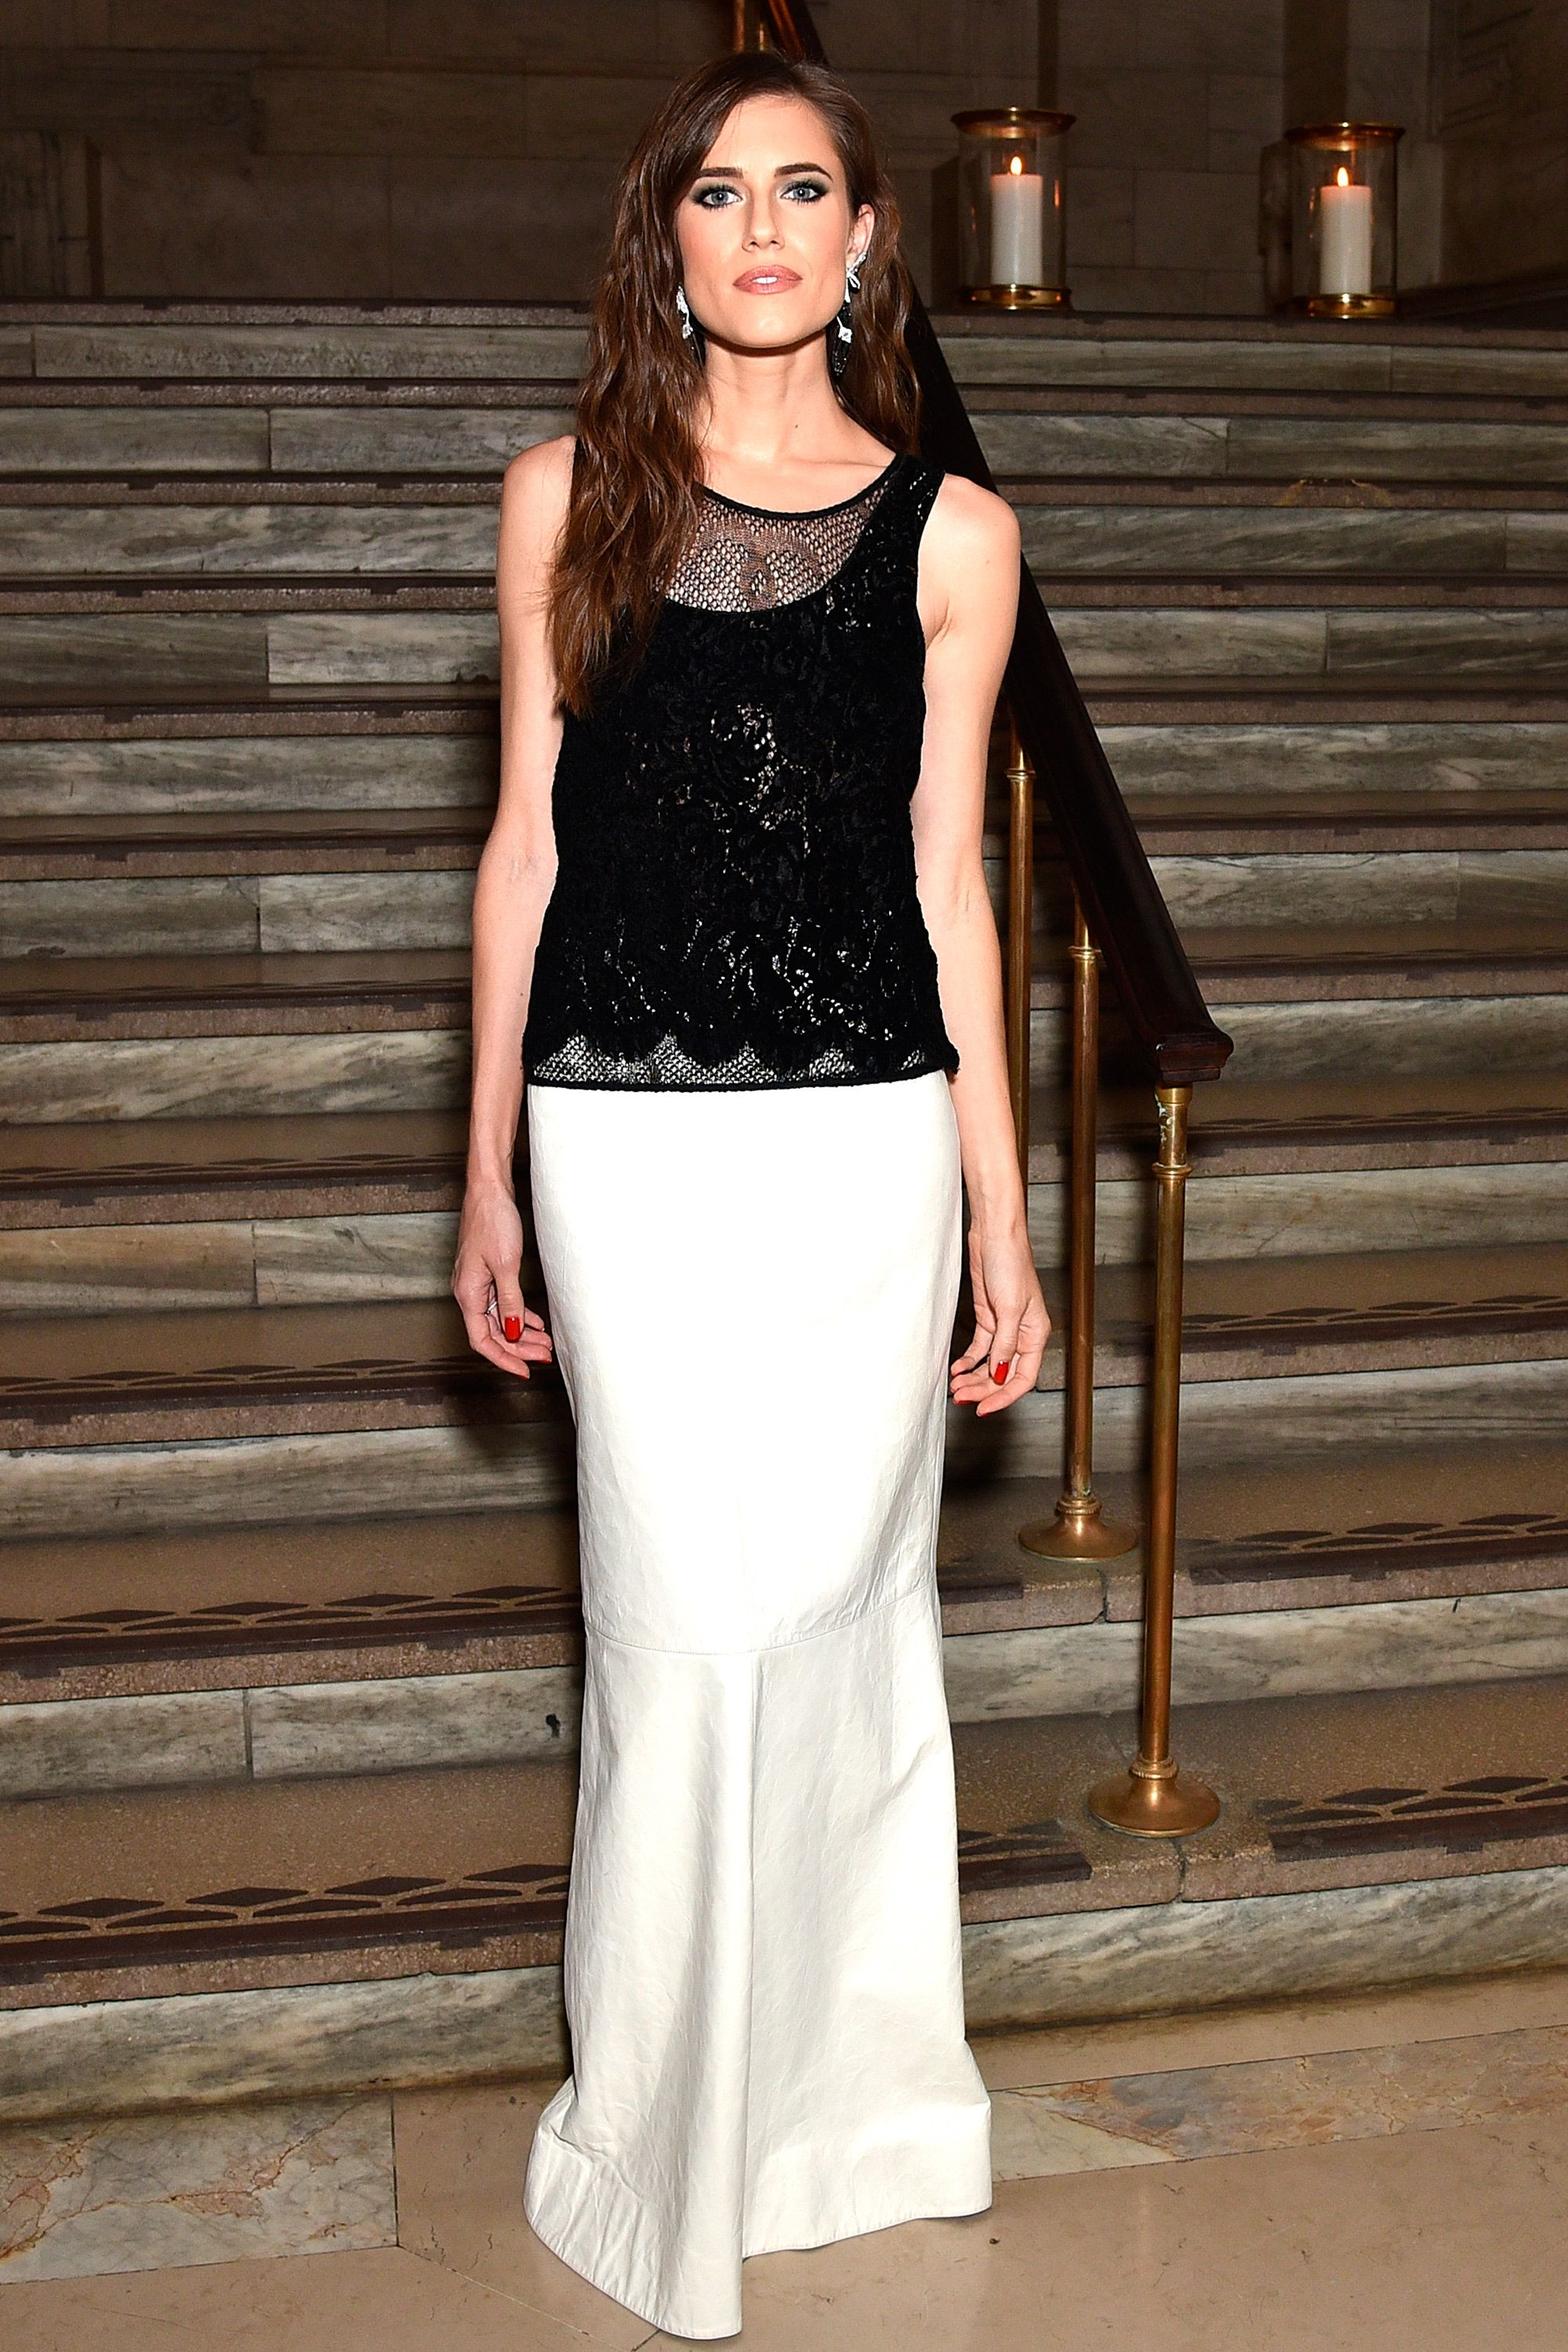 Allison Williams at Chanel'sFine Jewelry Dinner at The New York Public Library on June 2, 2016